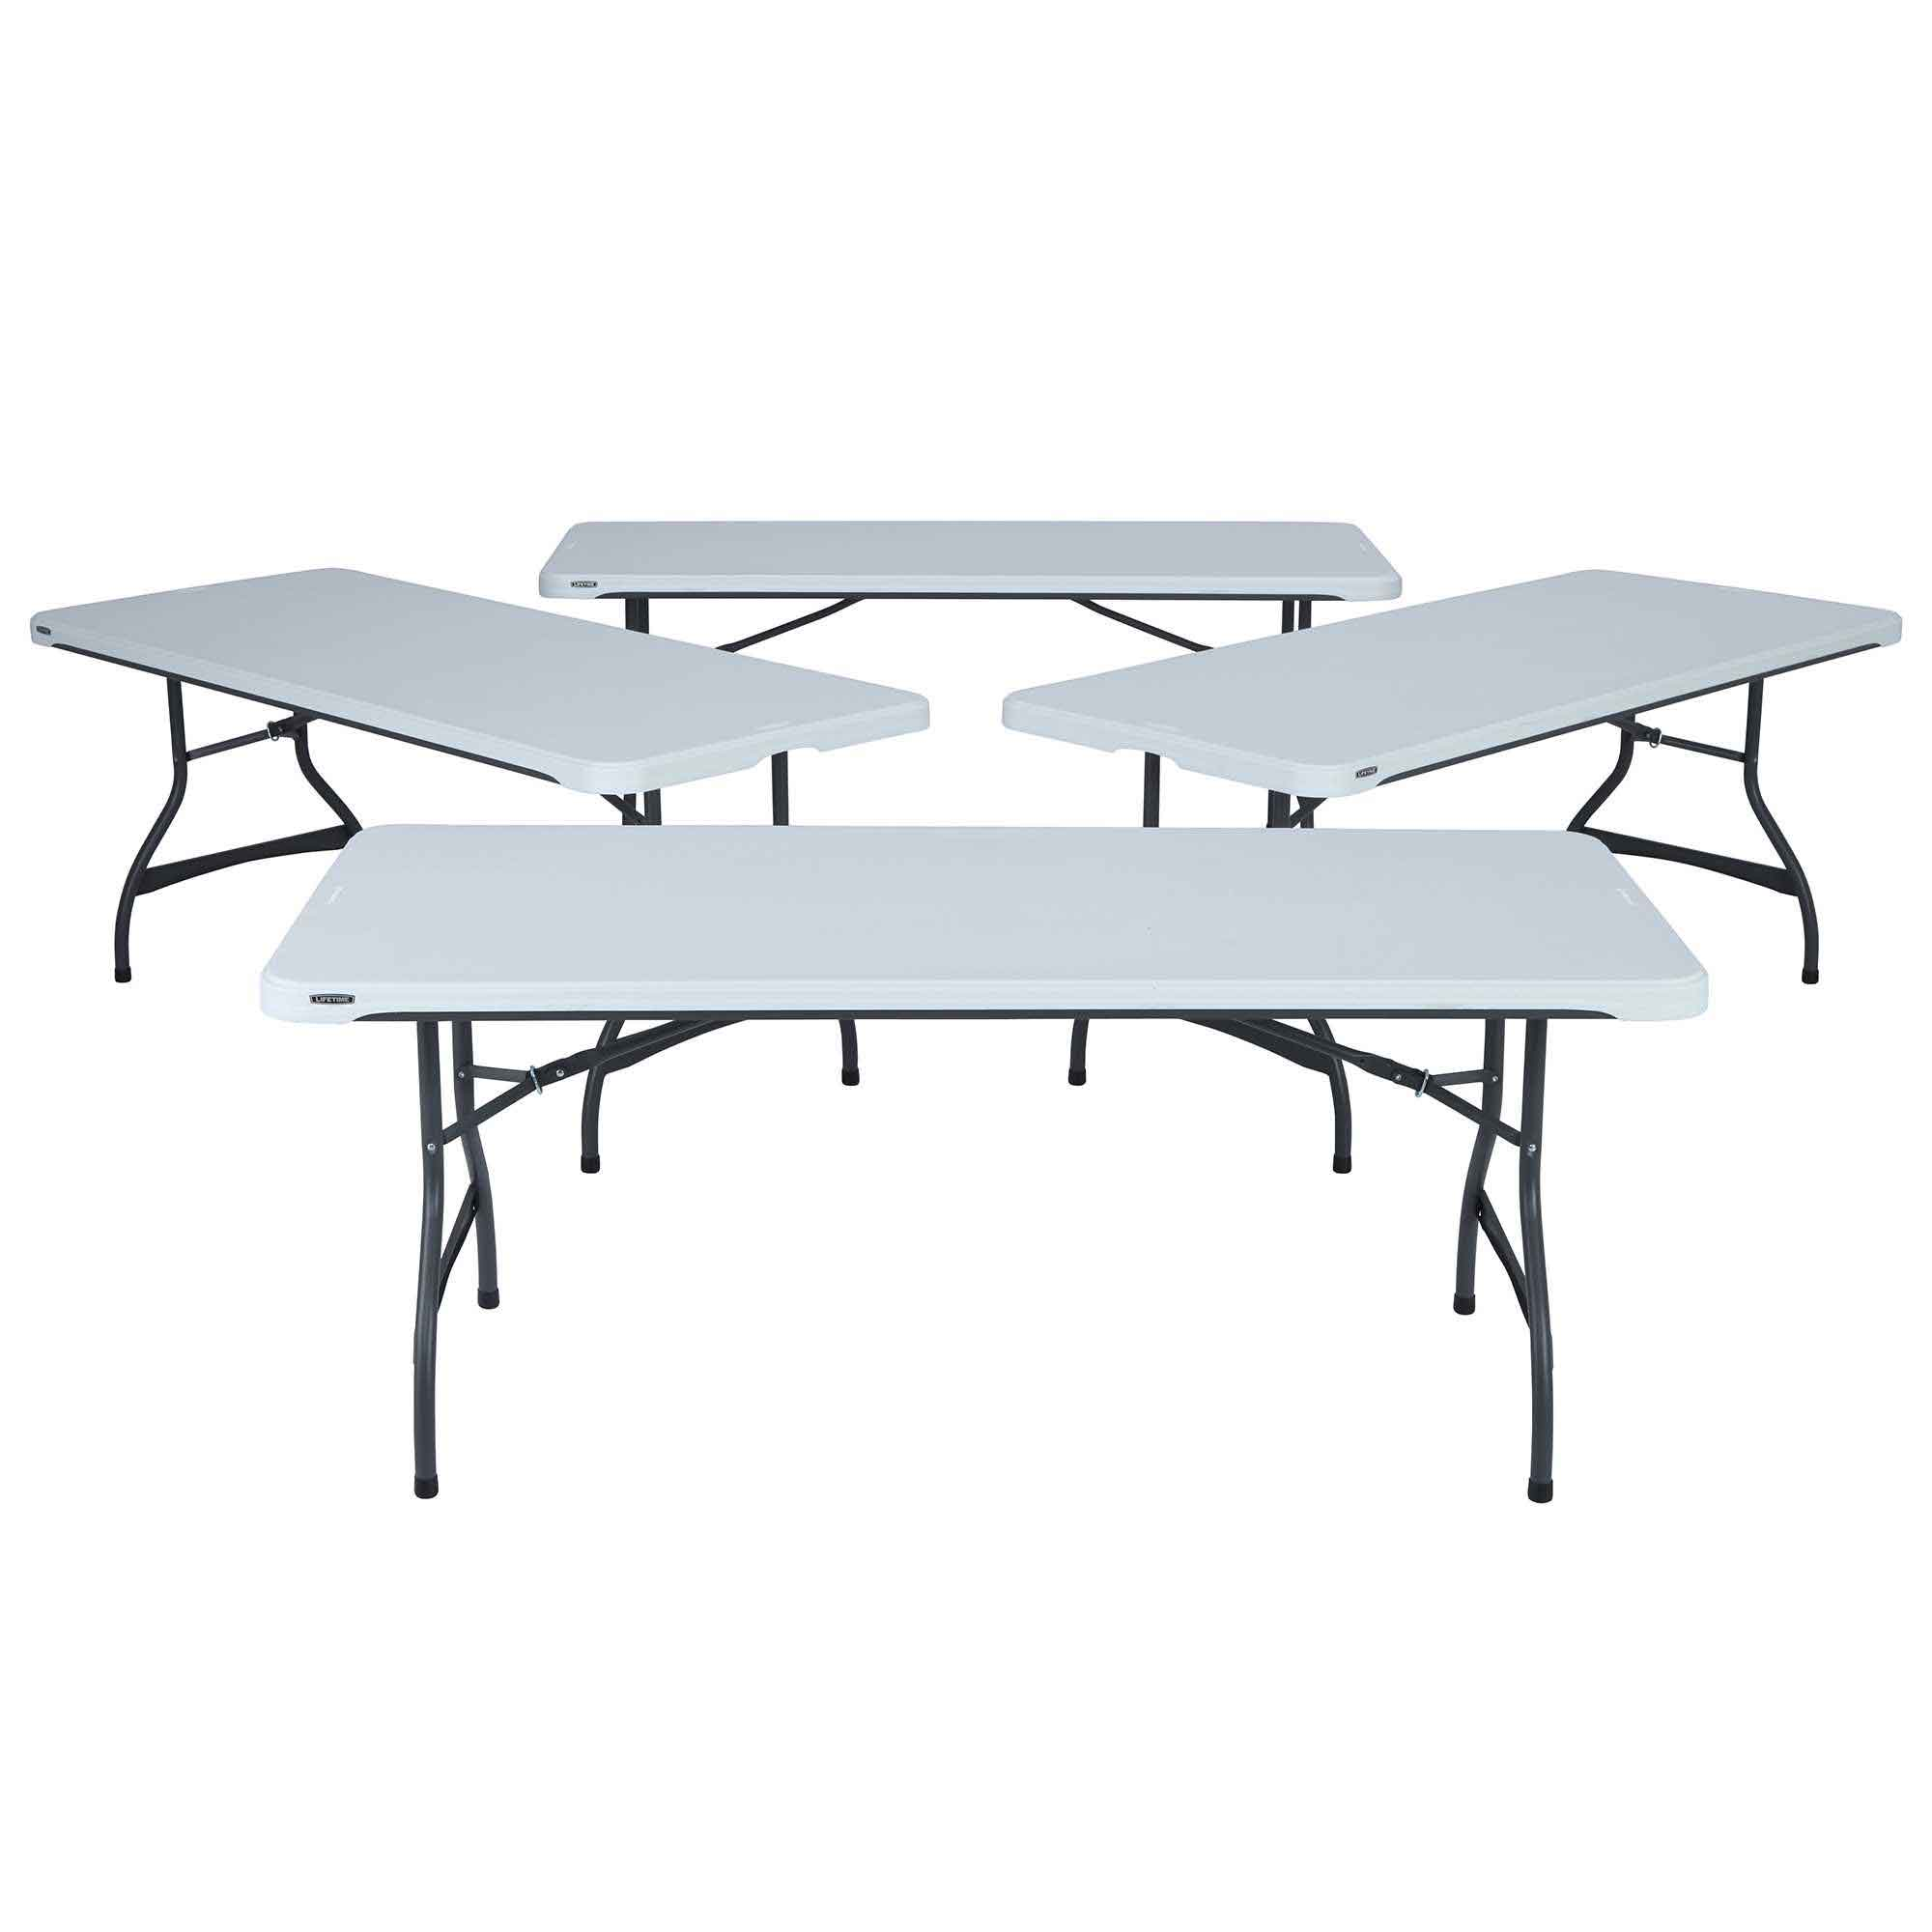 Lifetime Nesting & Folding Table 6 on Sale with Free Shipping